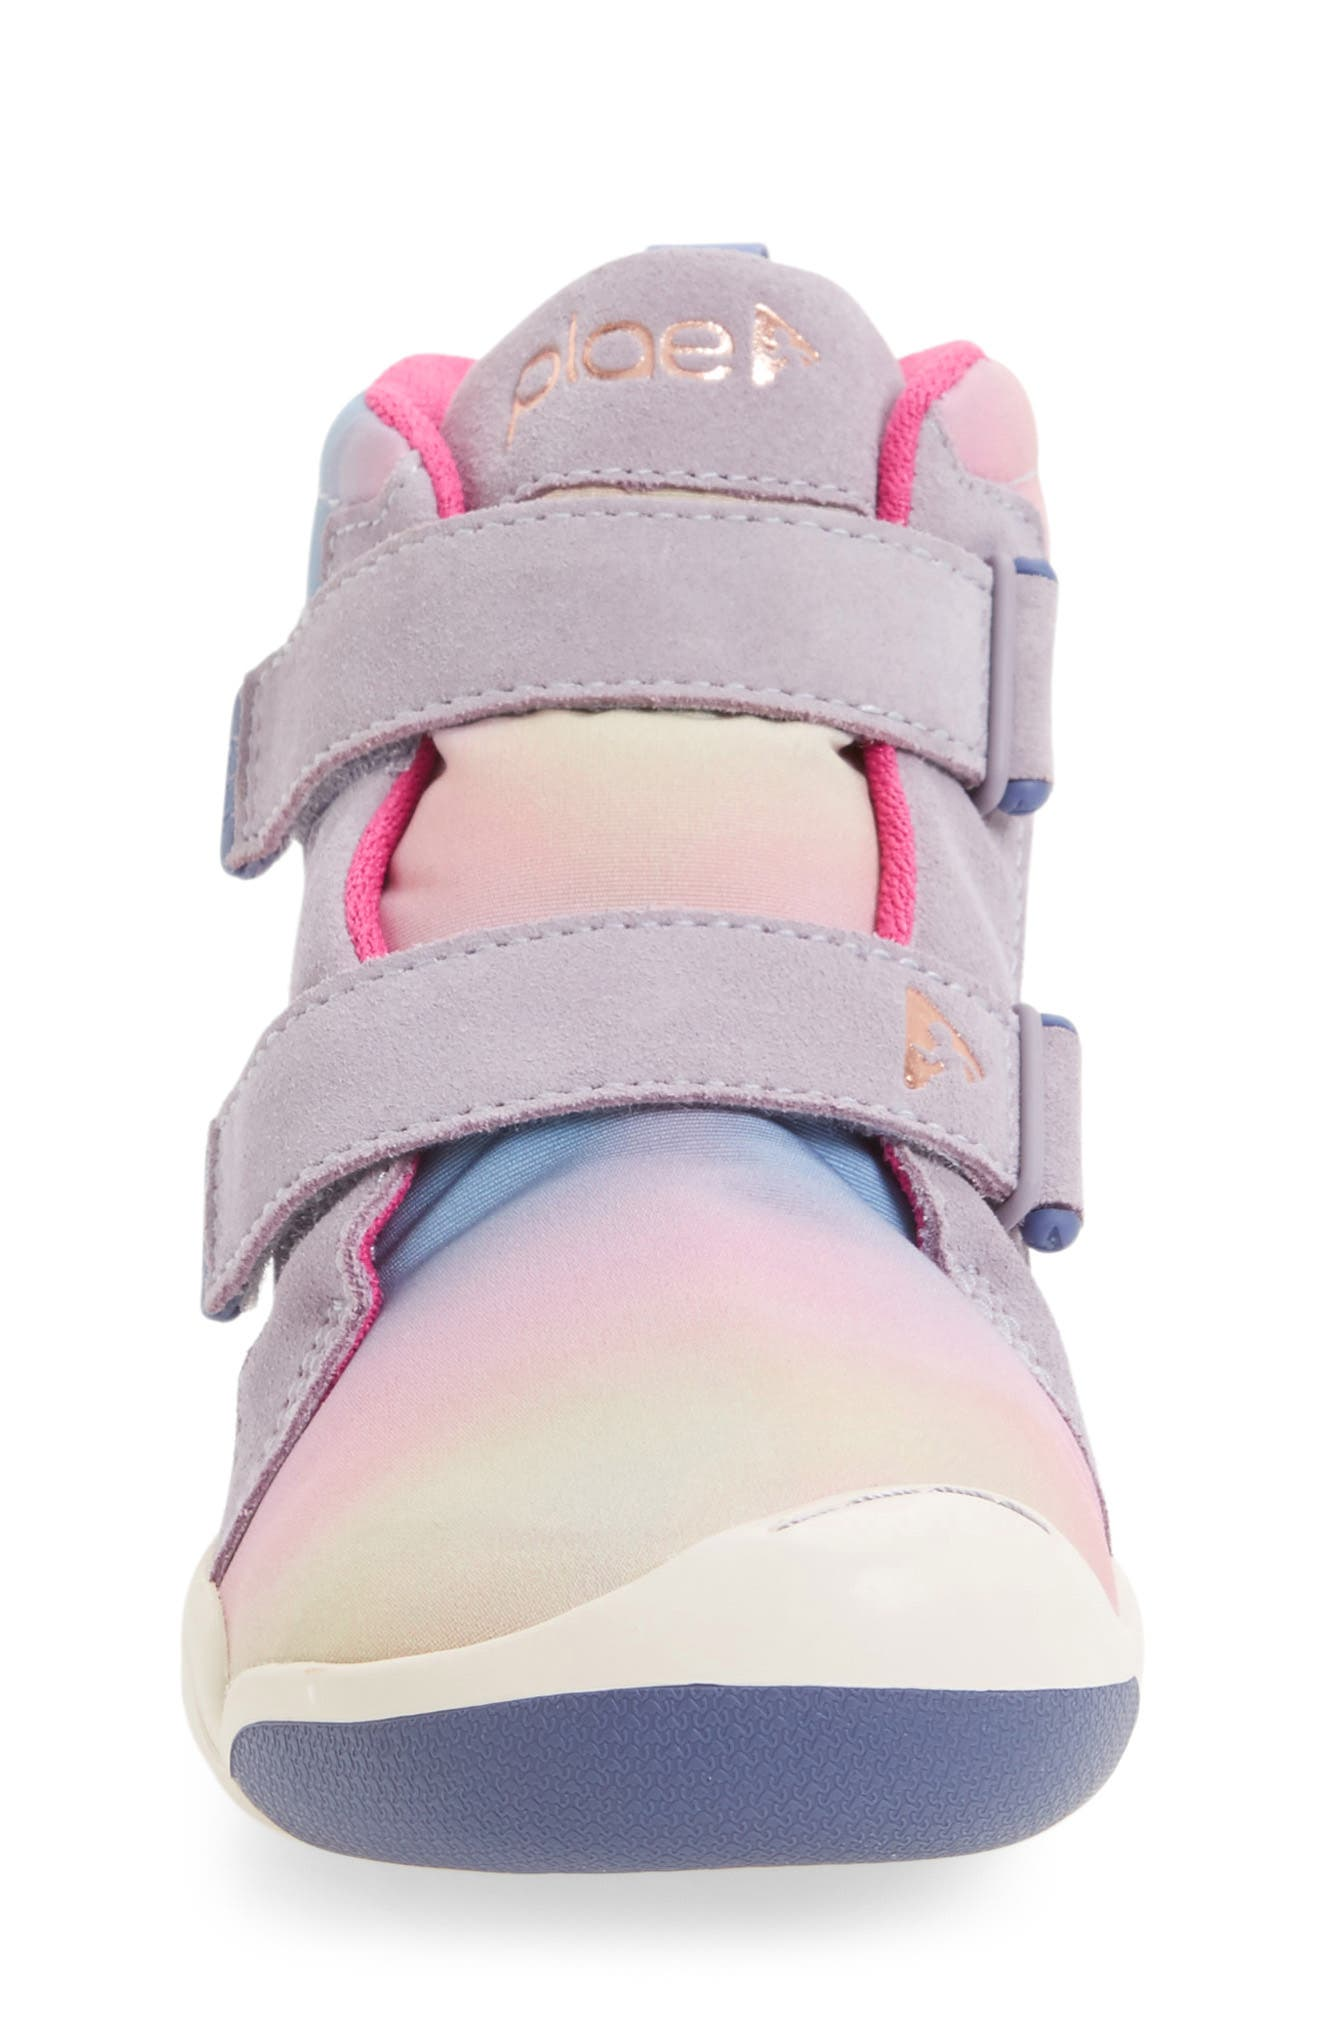 Max Customizable High Top Sneaker,                             Alternate thumbnail 3, color,                             650